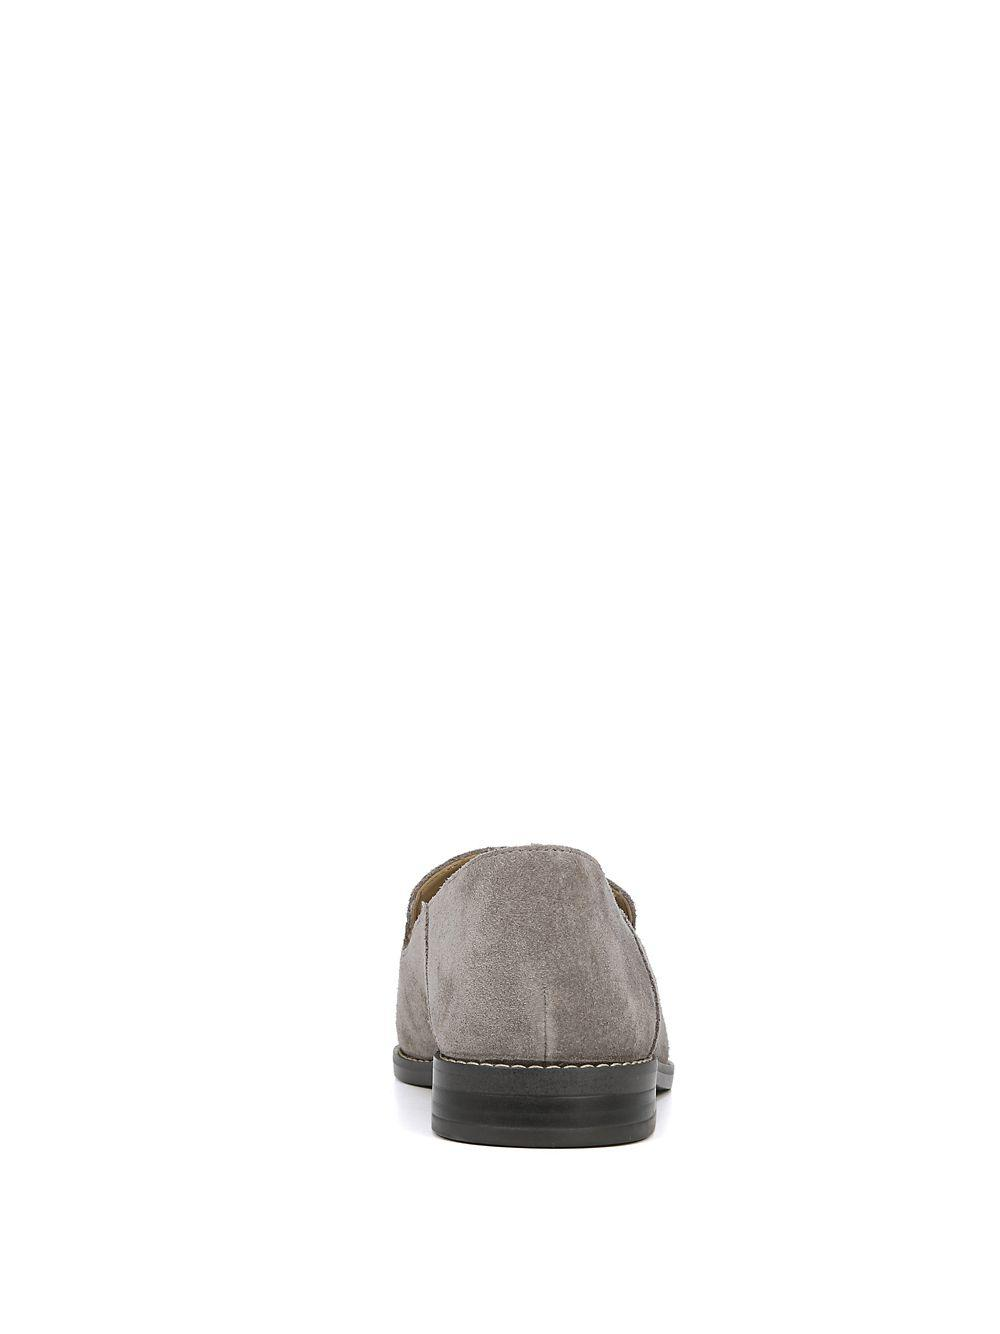 677c0213bf7 Lyst - Franco Sarto Hadden Suede Loafers in Gray - Save 12.359550561797747%